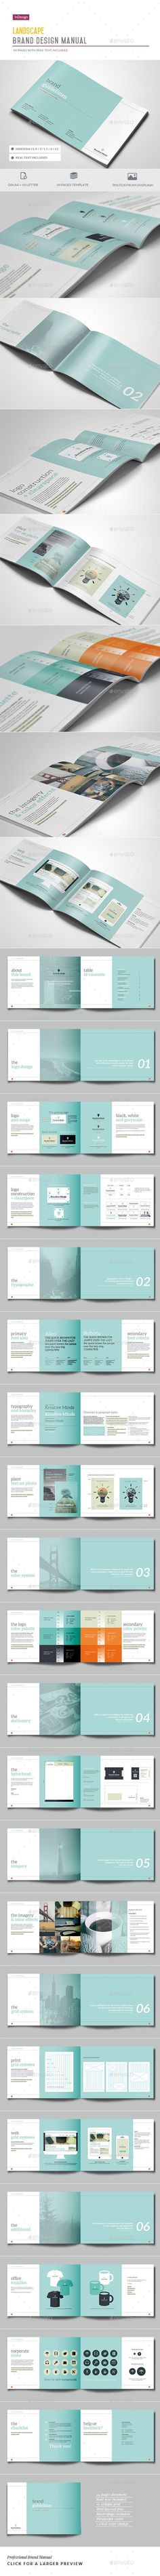 Brand Guidelines - 44 Pages Template InDesign INDD #design Download: graphicriver.net/...